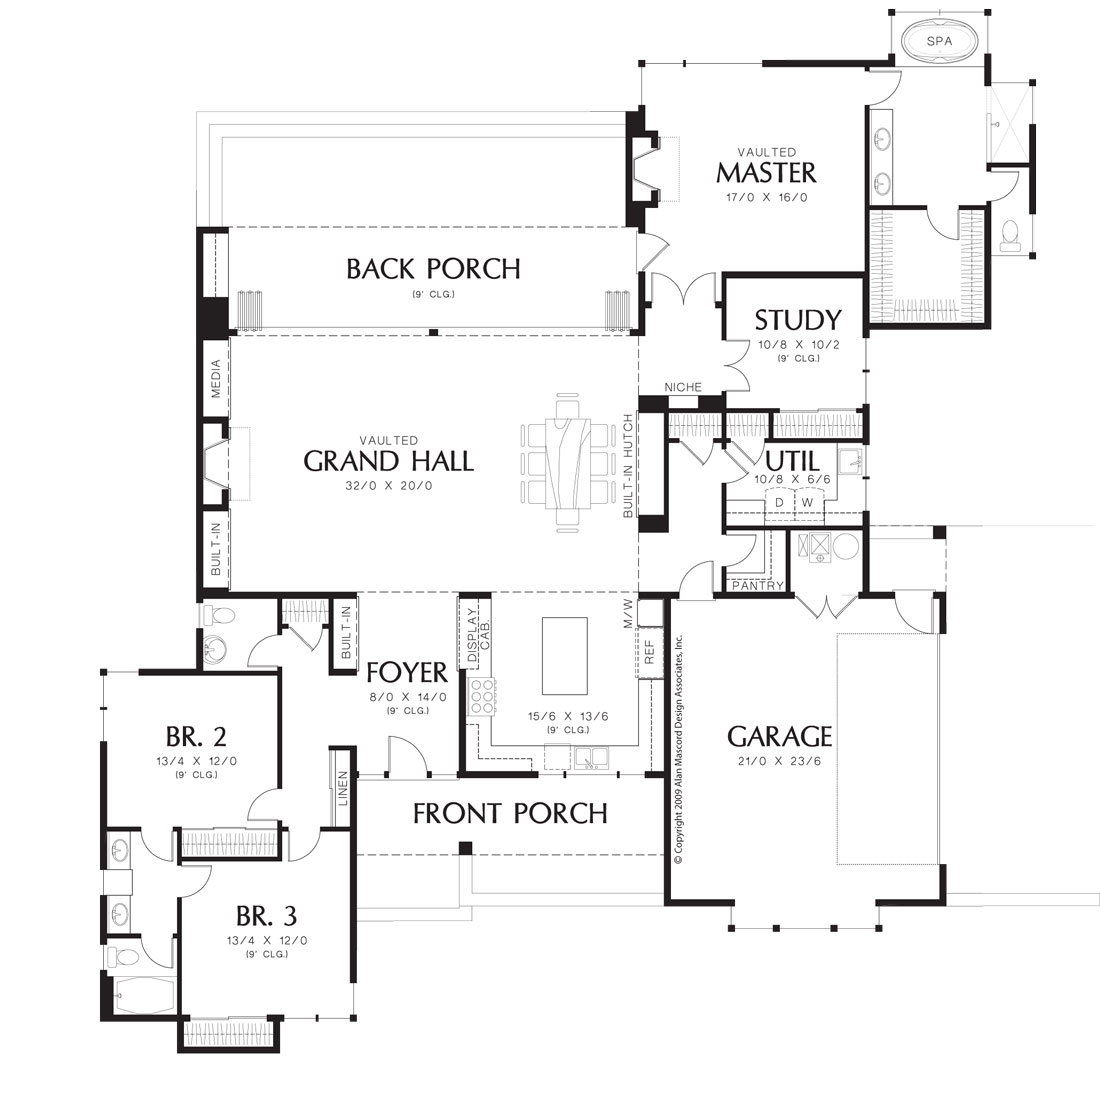 1242-floor-plan-1 Stan Home Design Plans on commercial architecture plans, home design story, construction plans, home design games, home design projects, home modern house design, home building plans, house plans, bathroom plans, home decorating, home design software, floor plans, home design principles, home design planning, garden plans, home architecture plans, engineering plans, home design tips, home hardware plans, home energy plans,